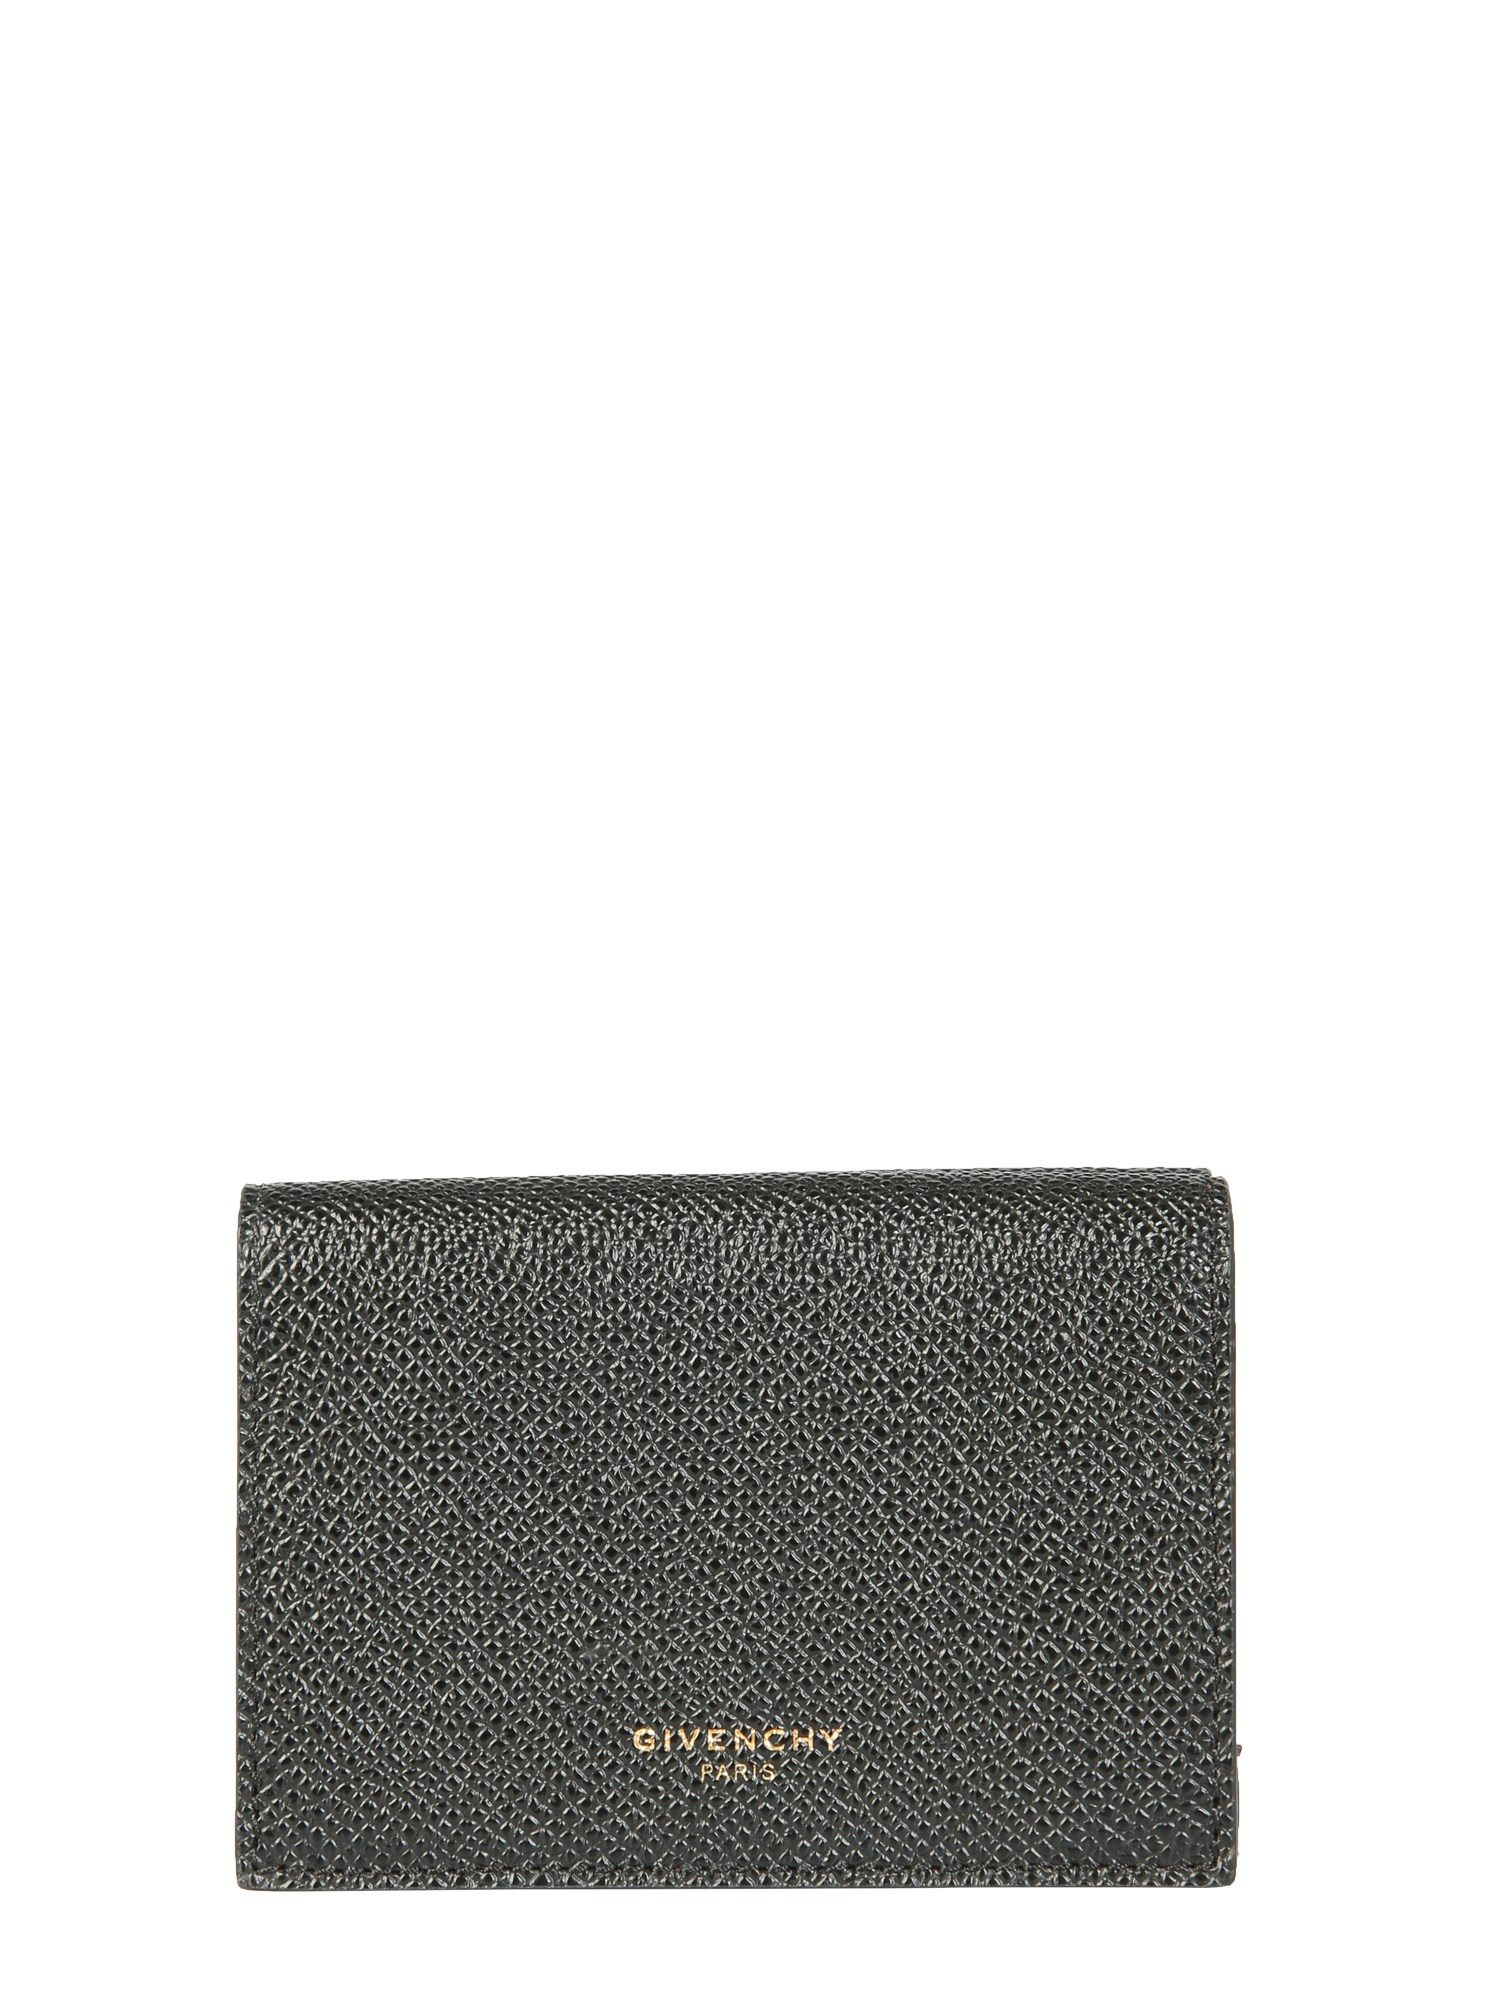 givenchy wallet with logo